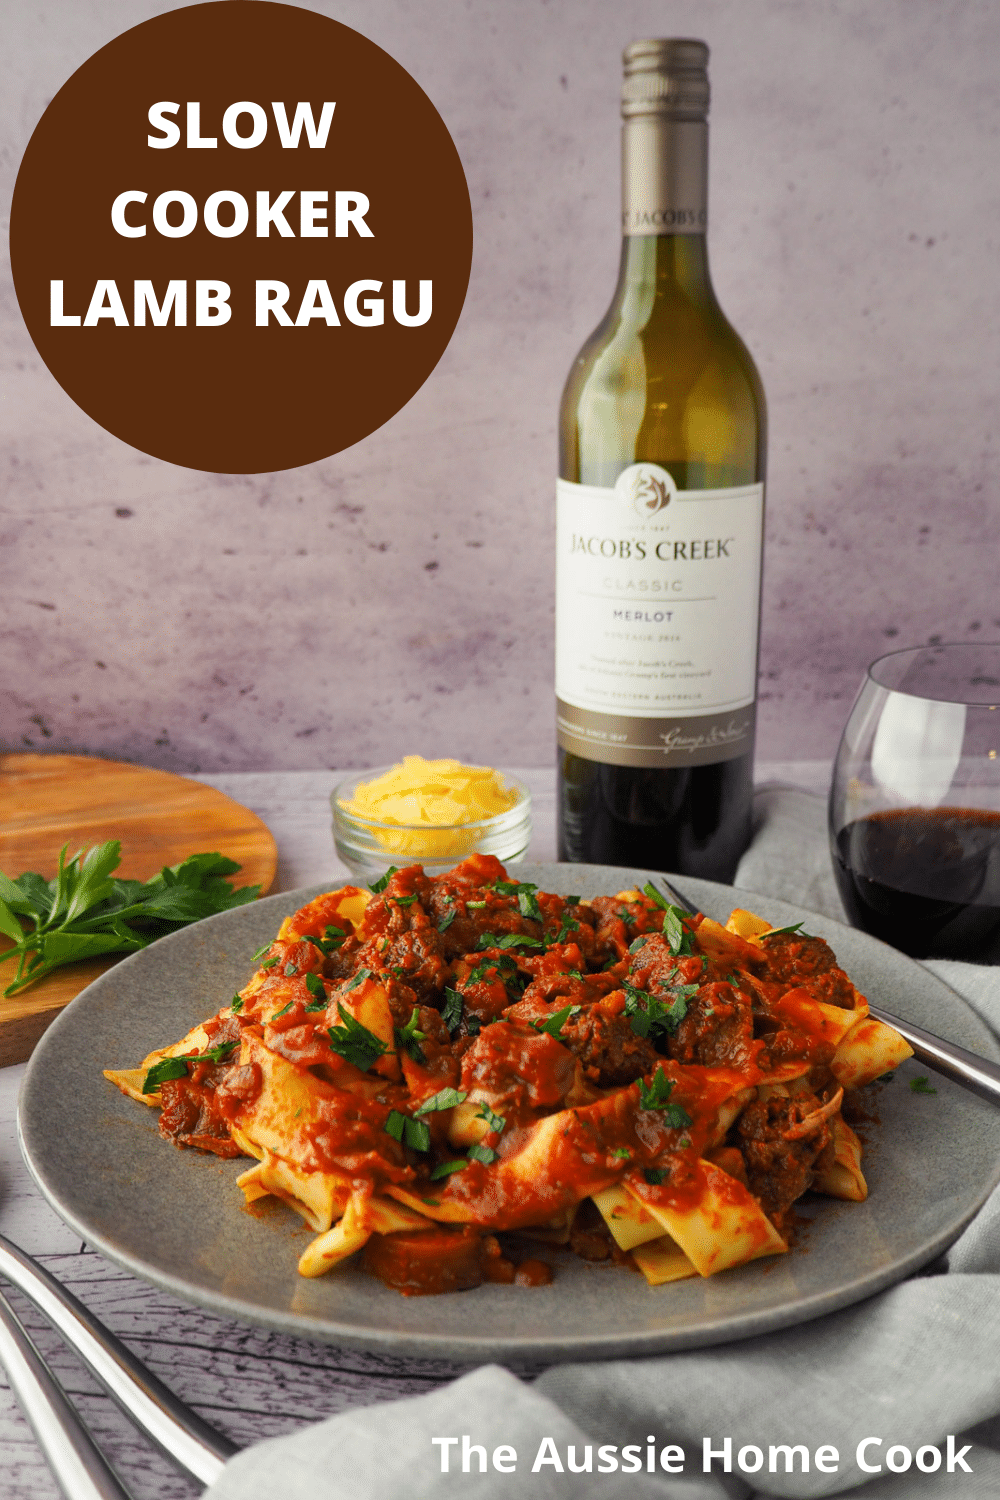 Plate of slow cooker lamb ragu, garnished with chopped parsley, surrounded by serving cutlery, glass of red wine, bowl of parmesan cheese and chopping board with parsley on it and text overlay, slow cooker lamb ragu, The Aussie Home Cook.